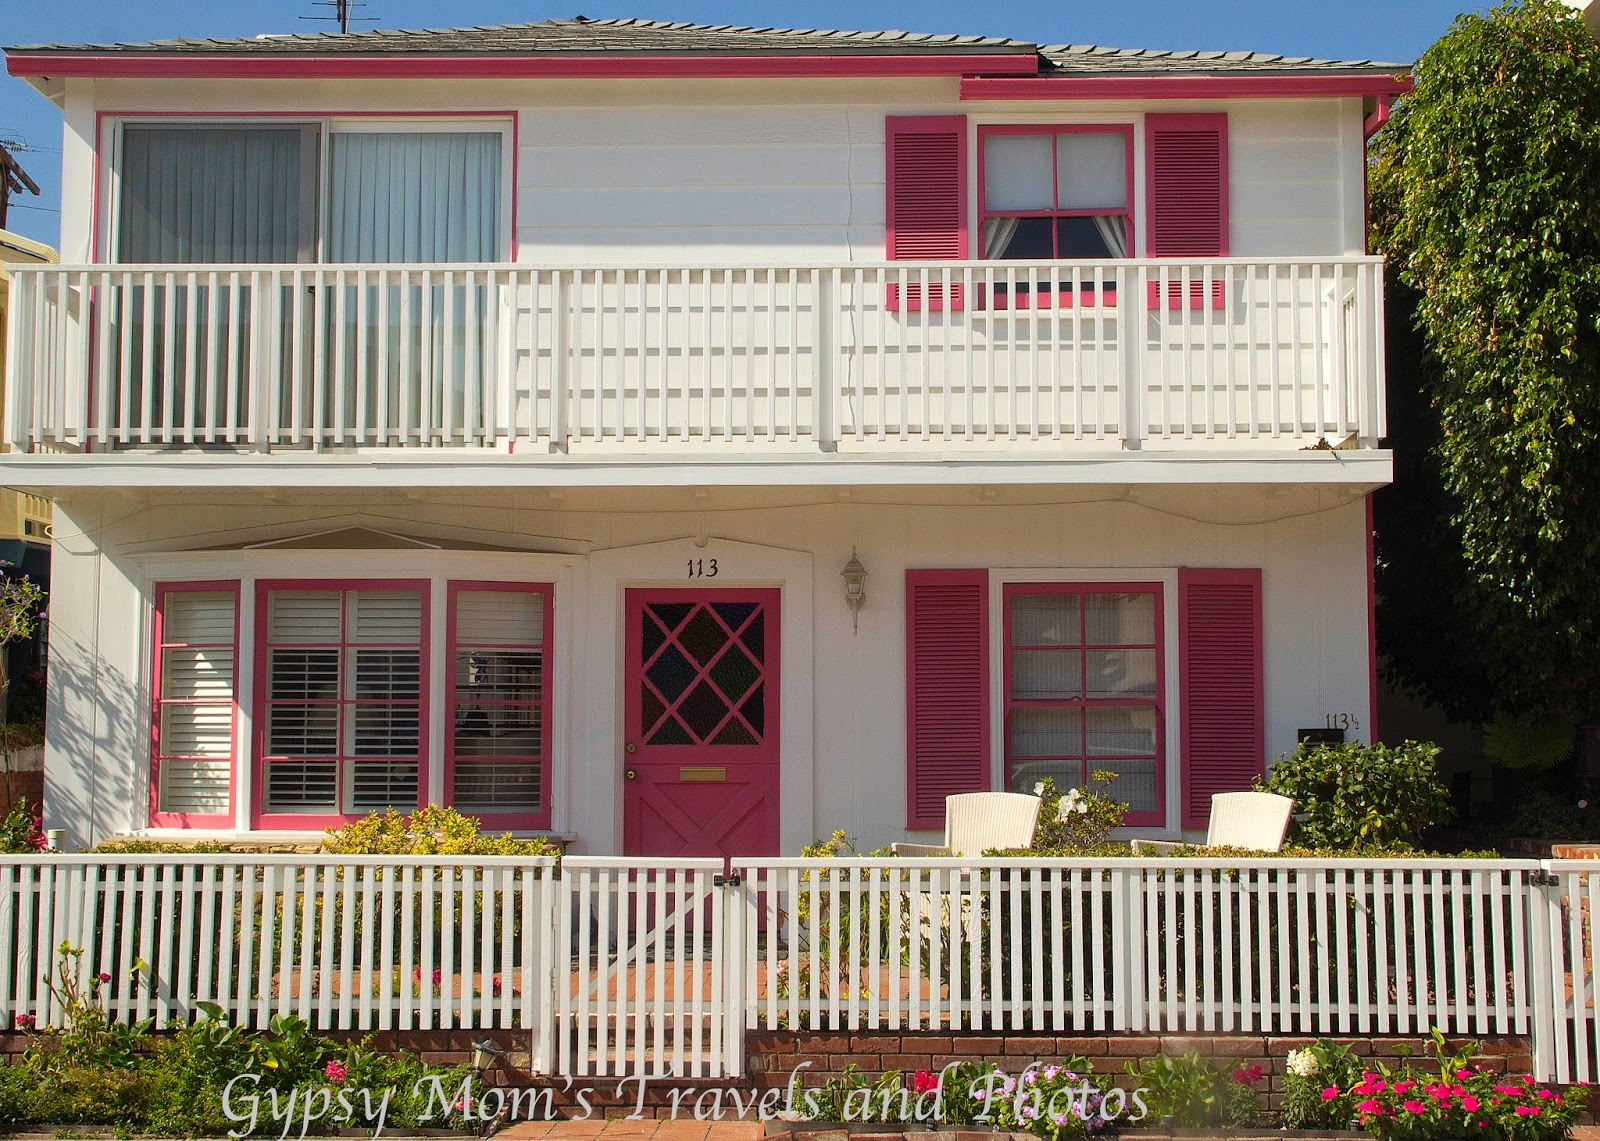 White house with pink trim on Balboa Island